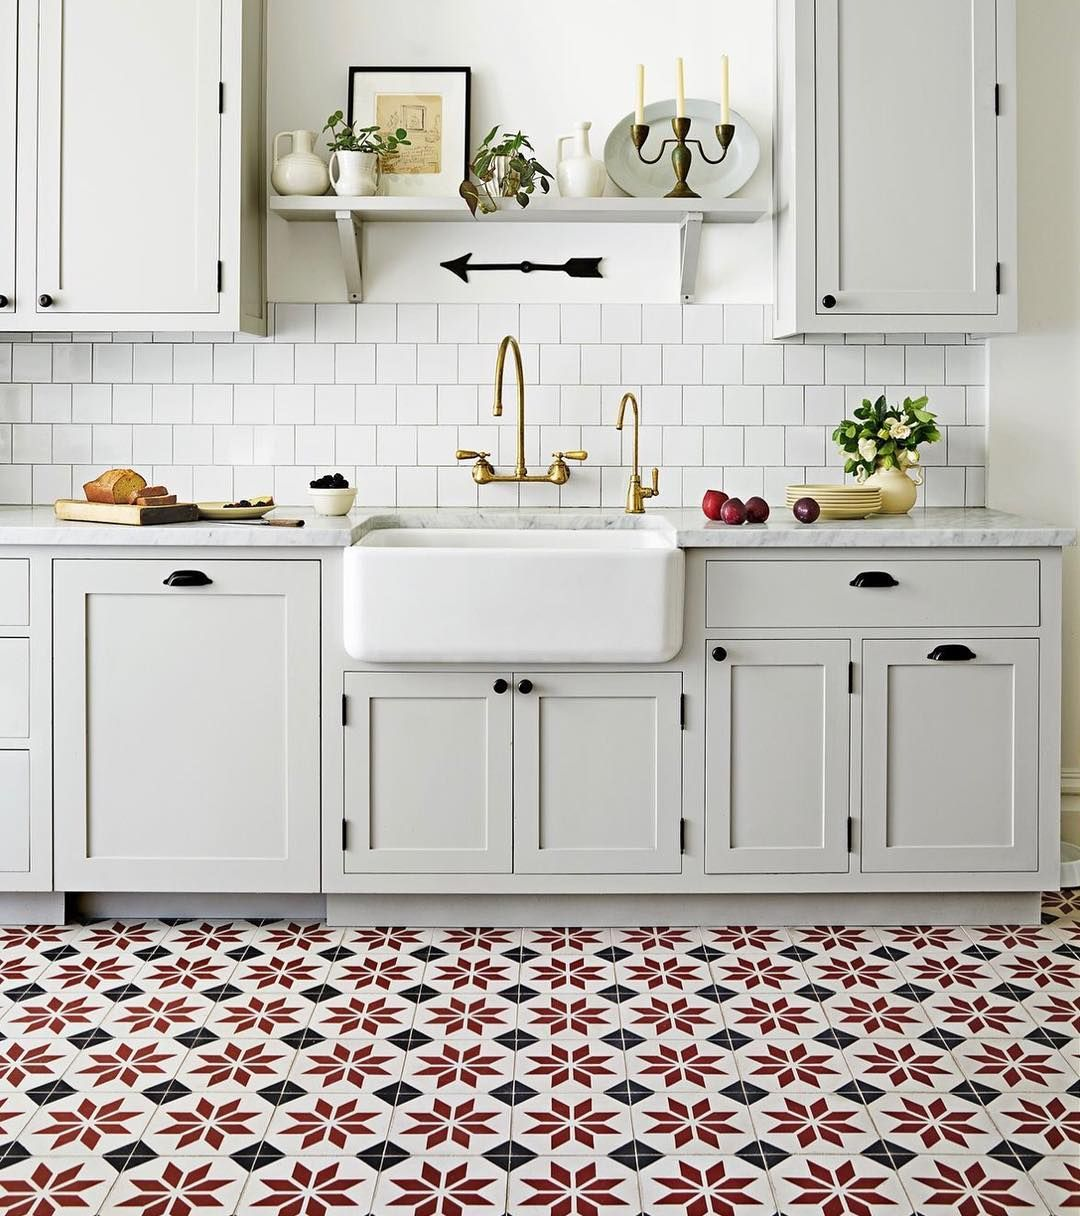 kitchen design network on instagram the stars are aligned in this gorgeous